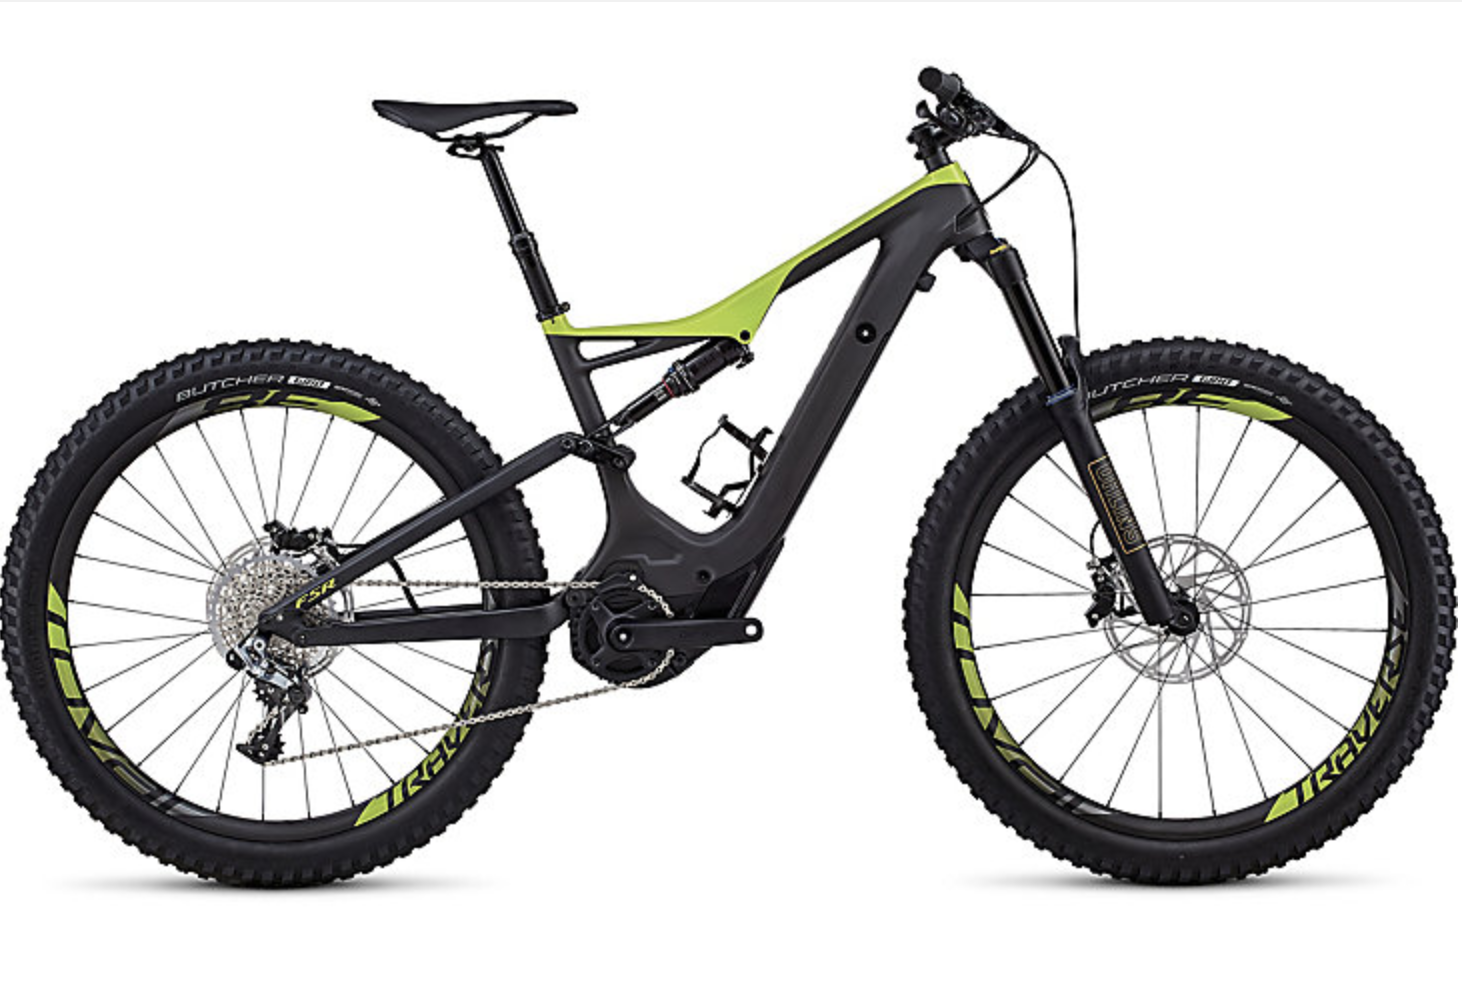 Mountain bike reviews, trails reviews, bike parts and components ...